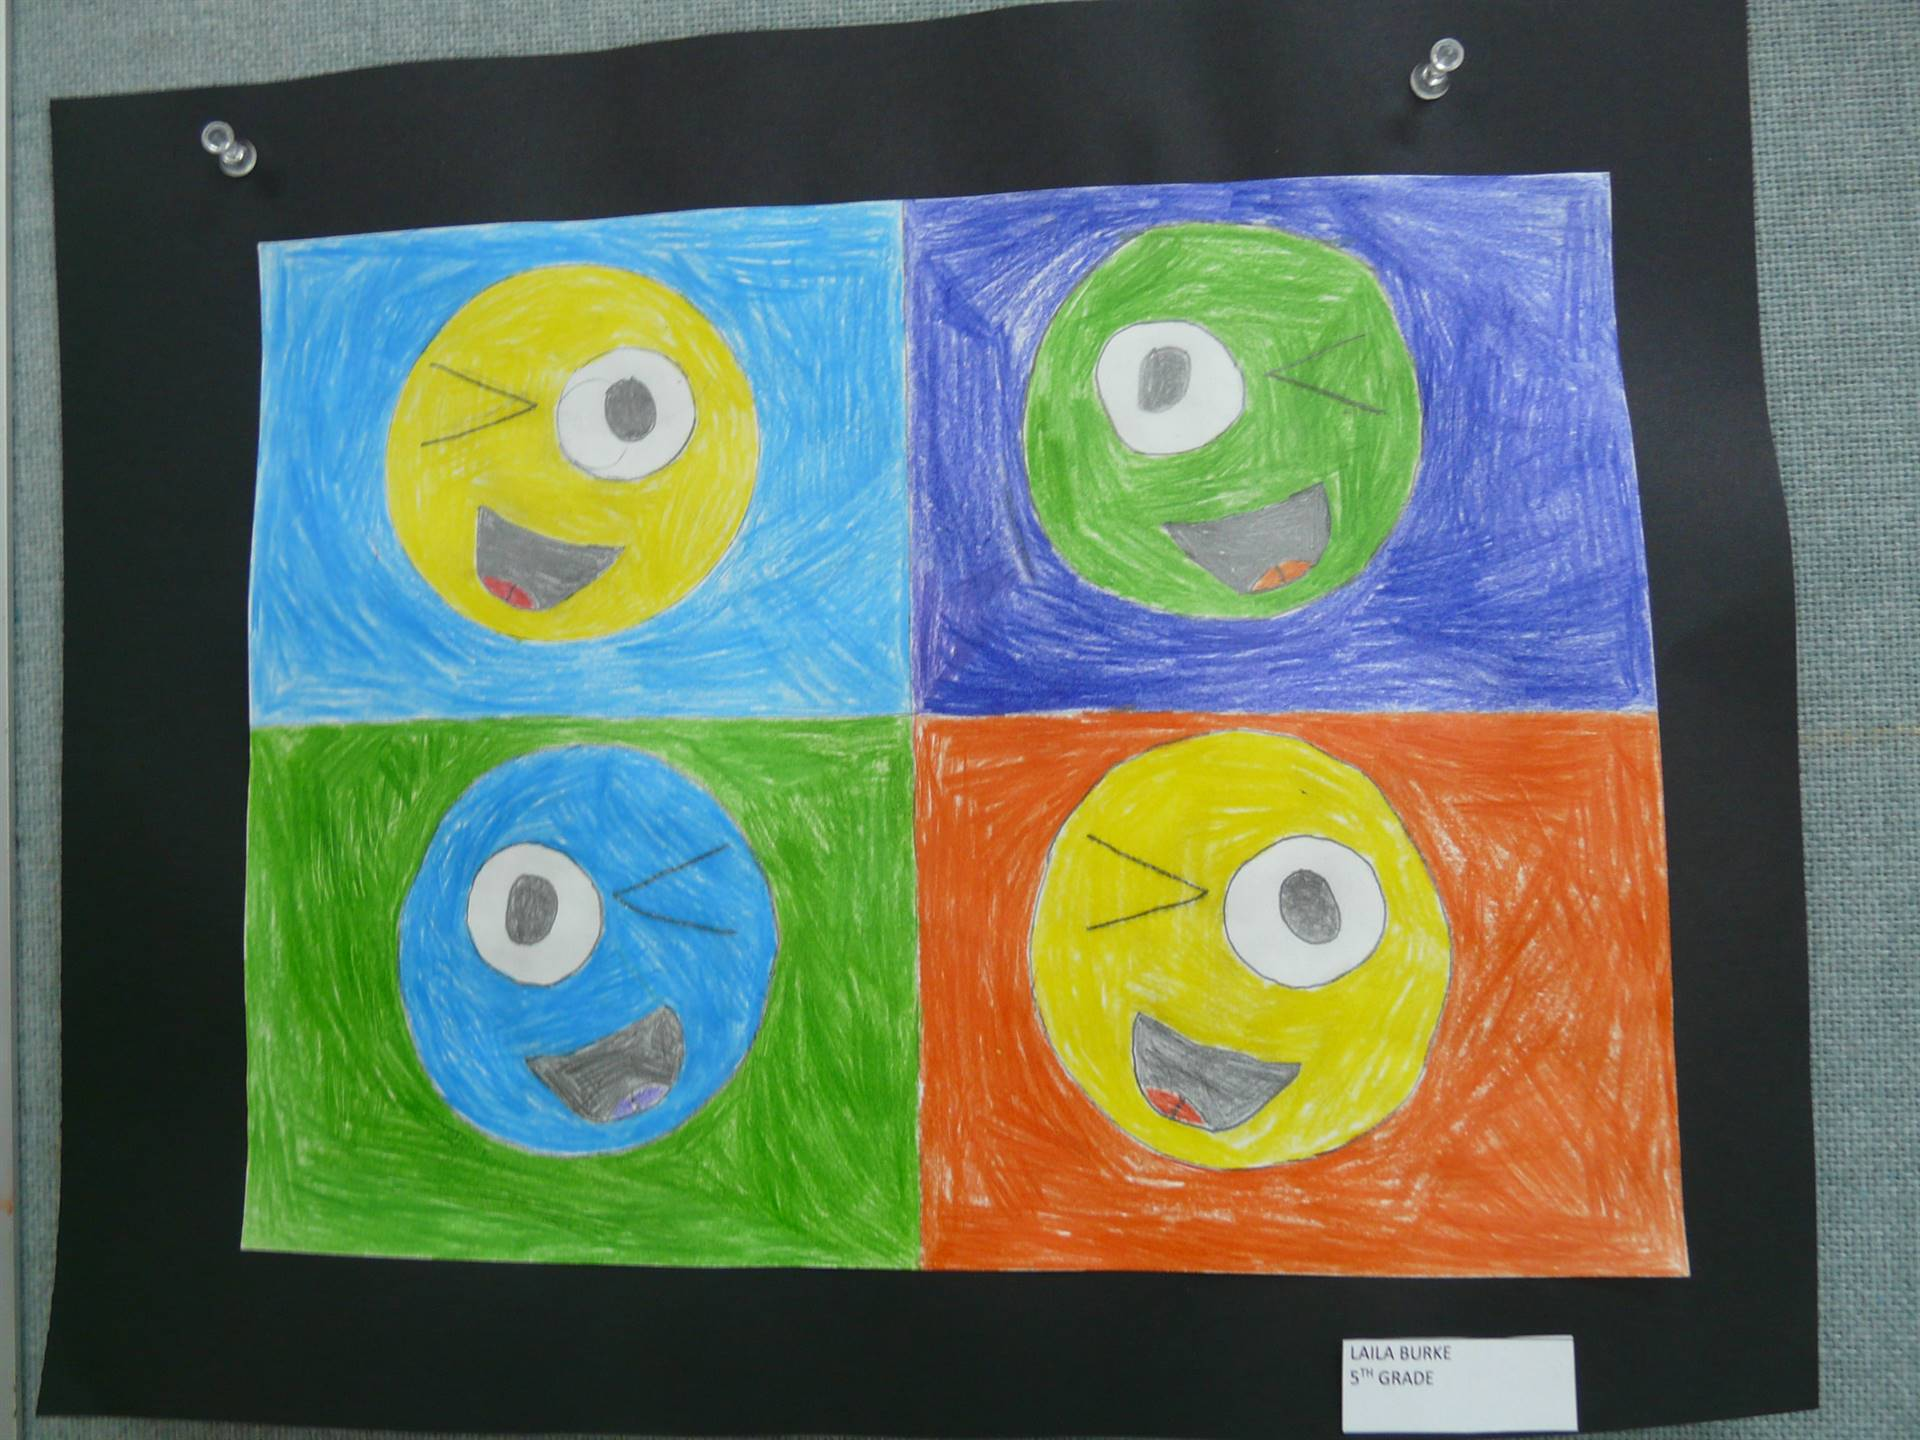 4 smiley faces in boxes-  all different colors with winking eyes